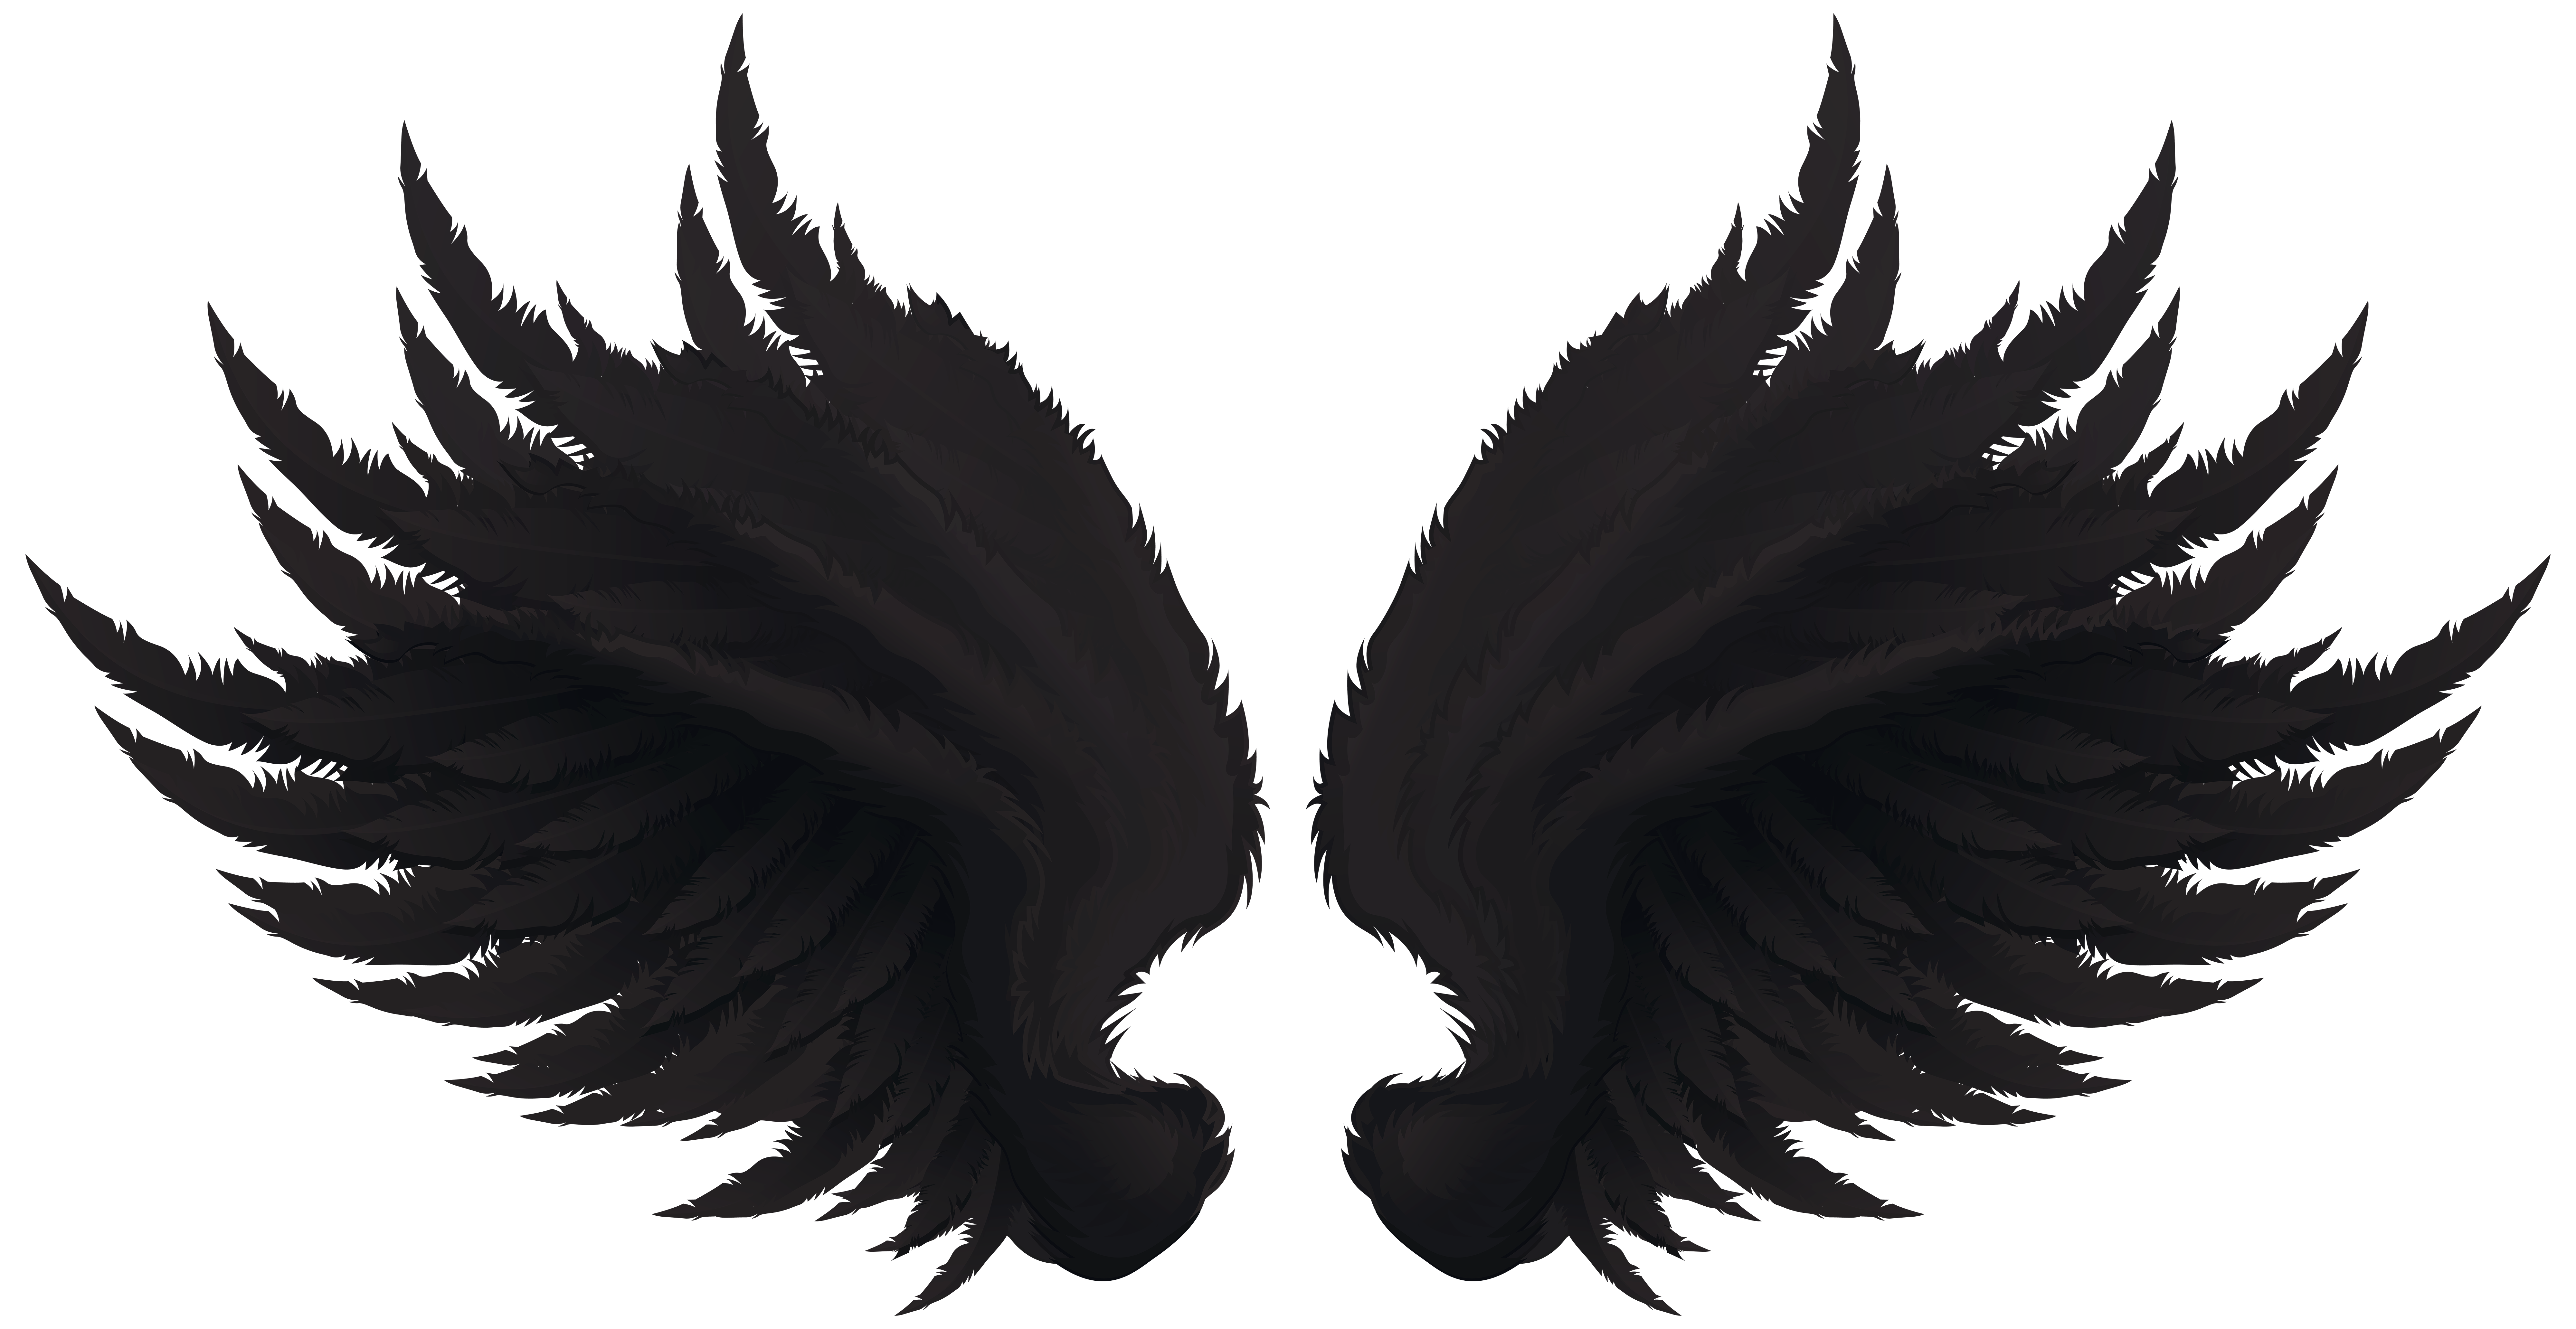 Black wings clipart black and white library Black Wings Transparent Clip Art Image | Gallery Yopriceville ... black and white library